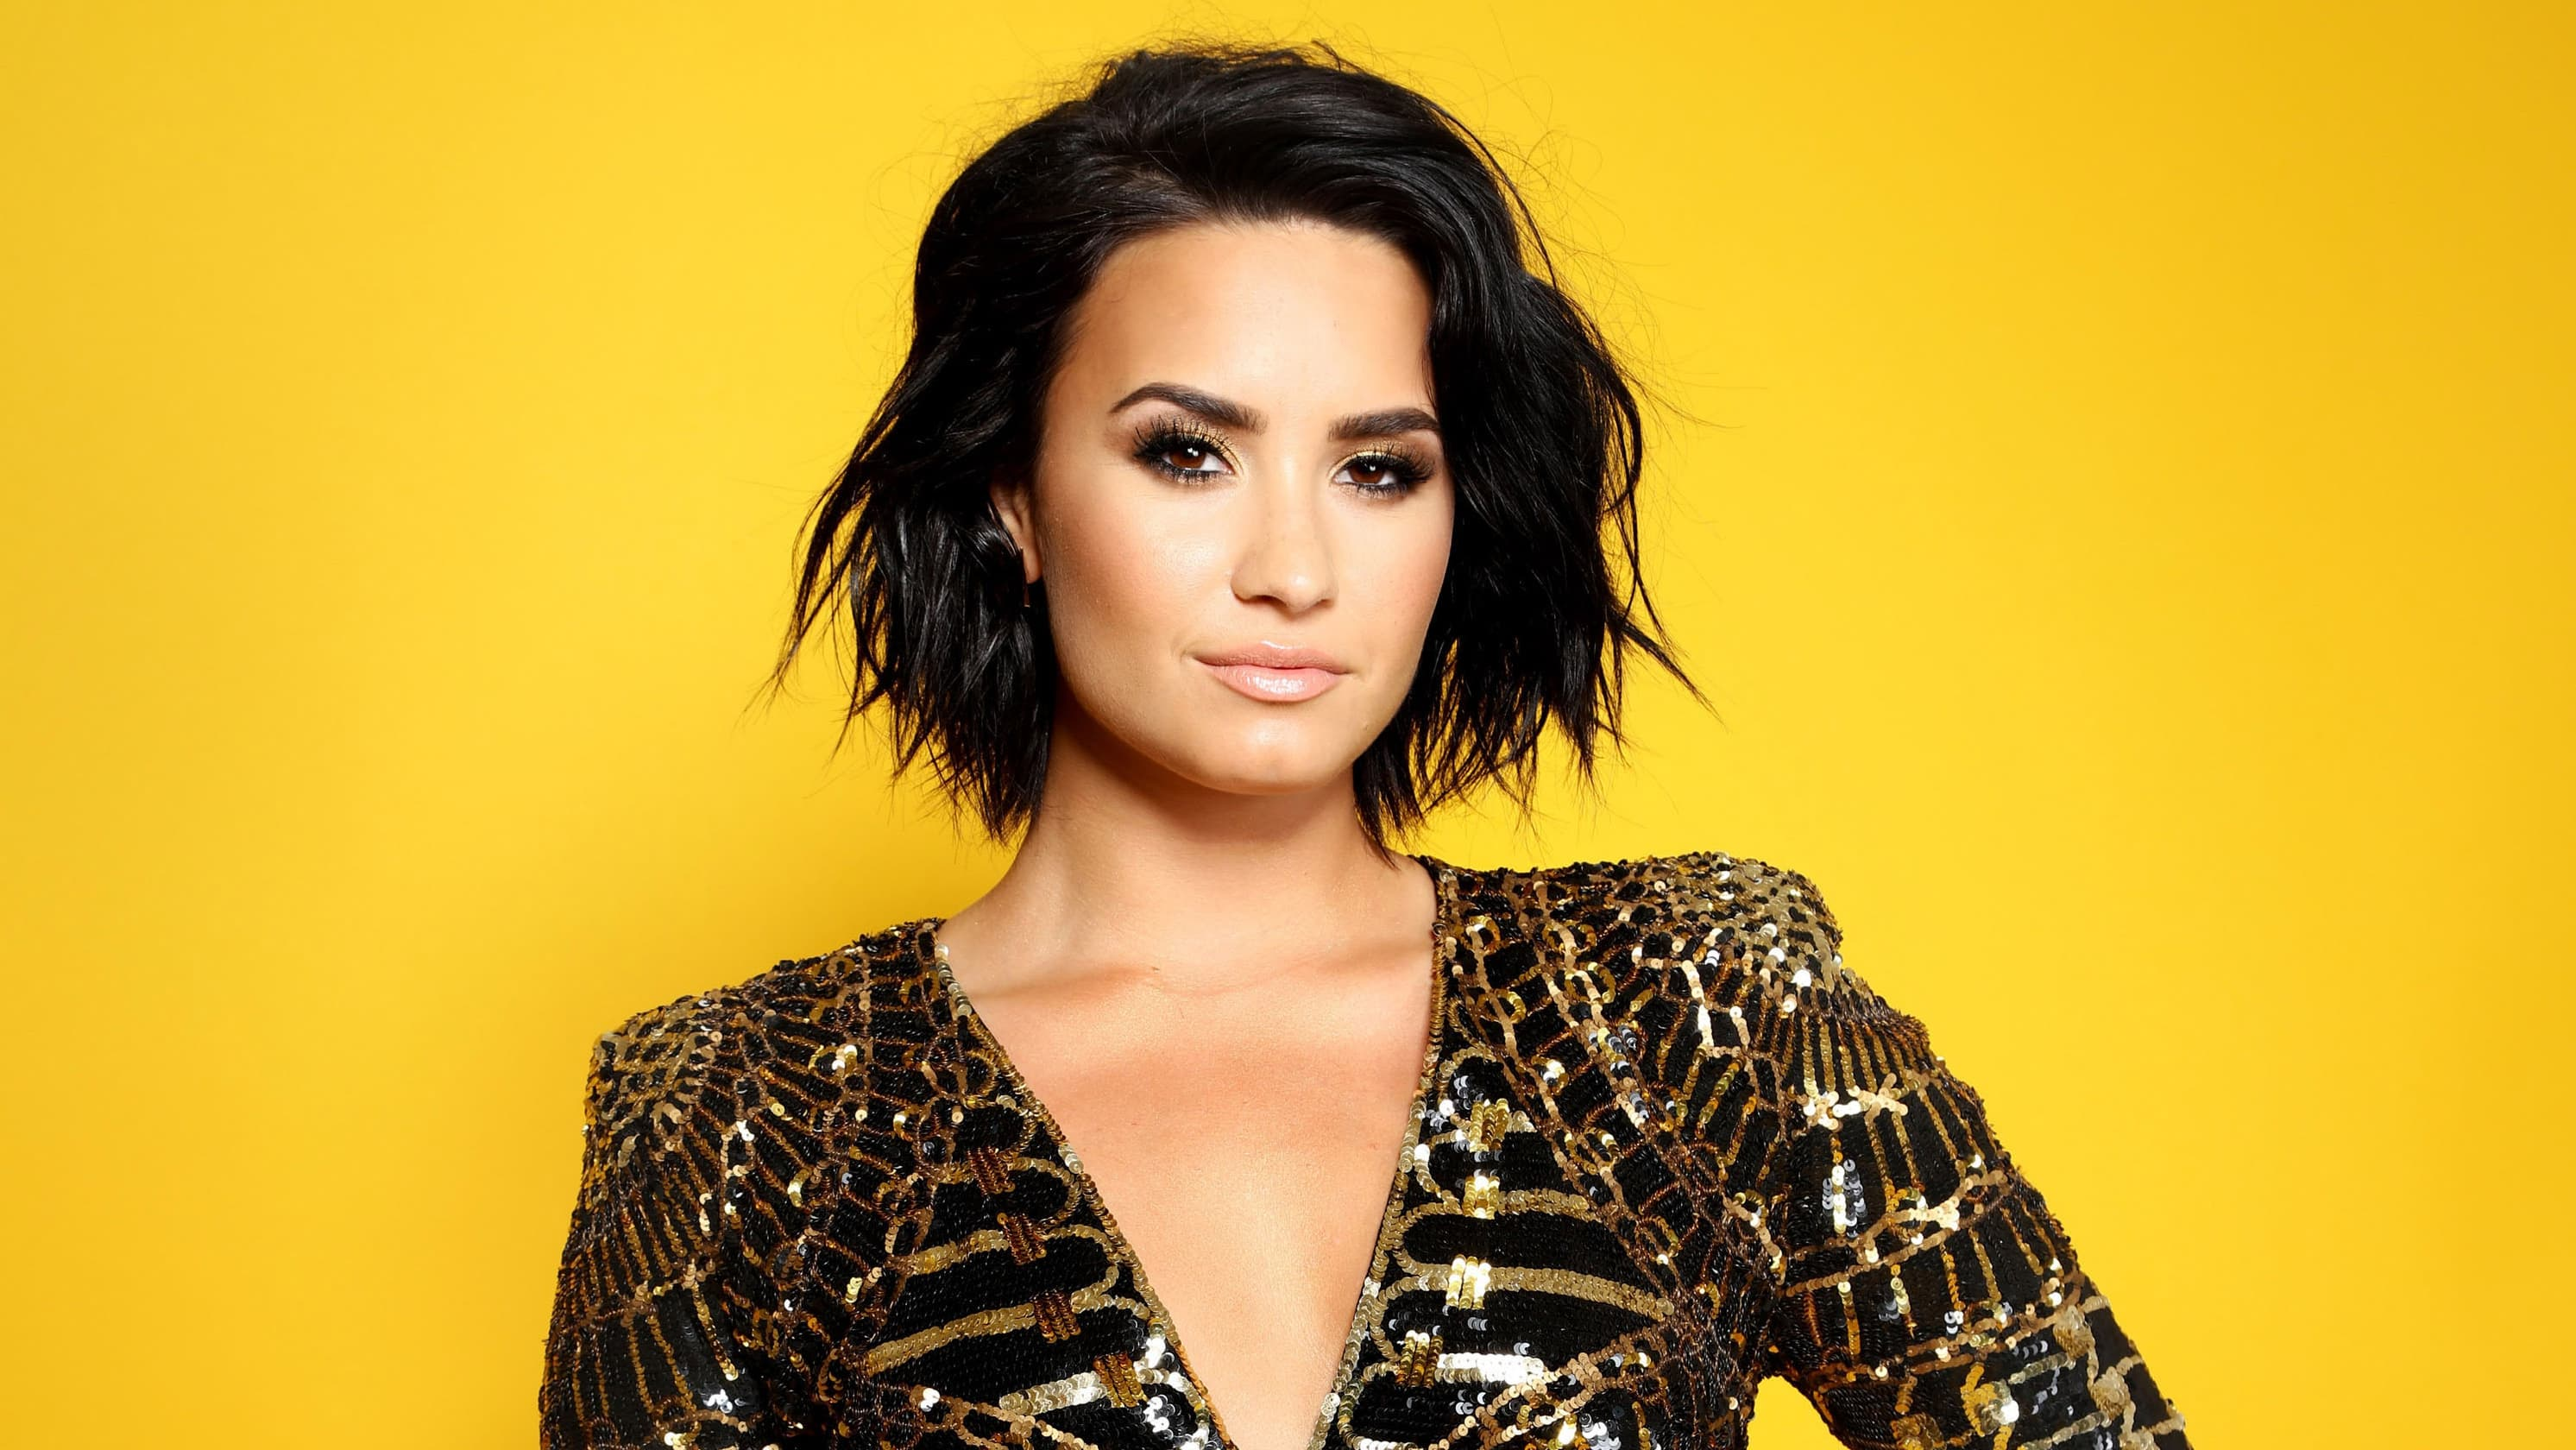 Wallpaper of Demi Lovato Hairstyle